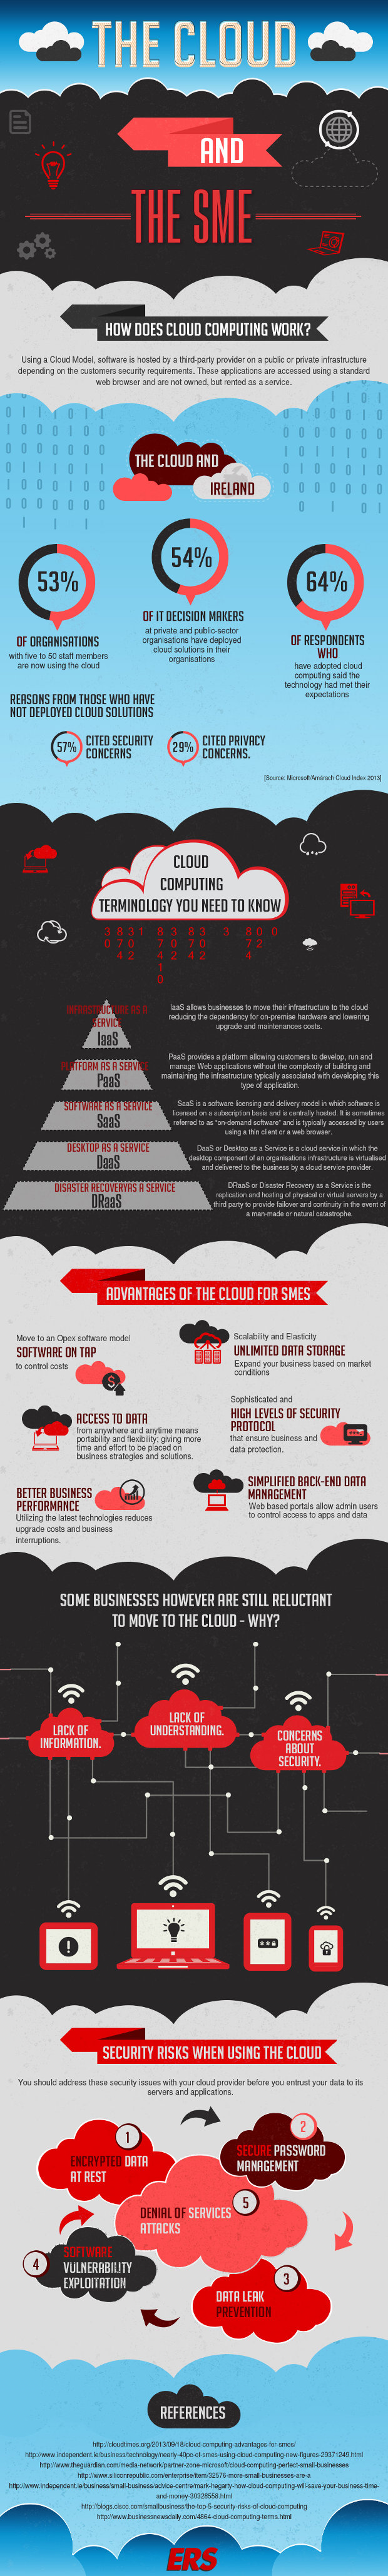 The cloud and the SME - infographic by ERS